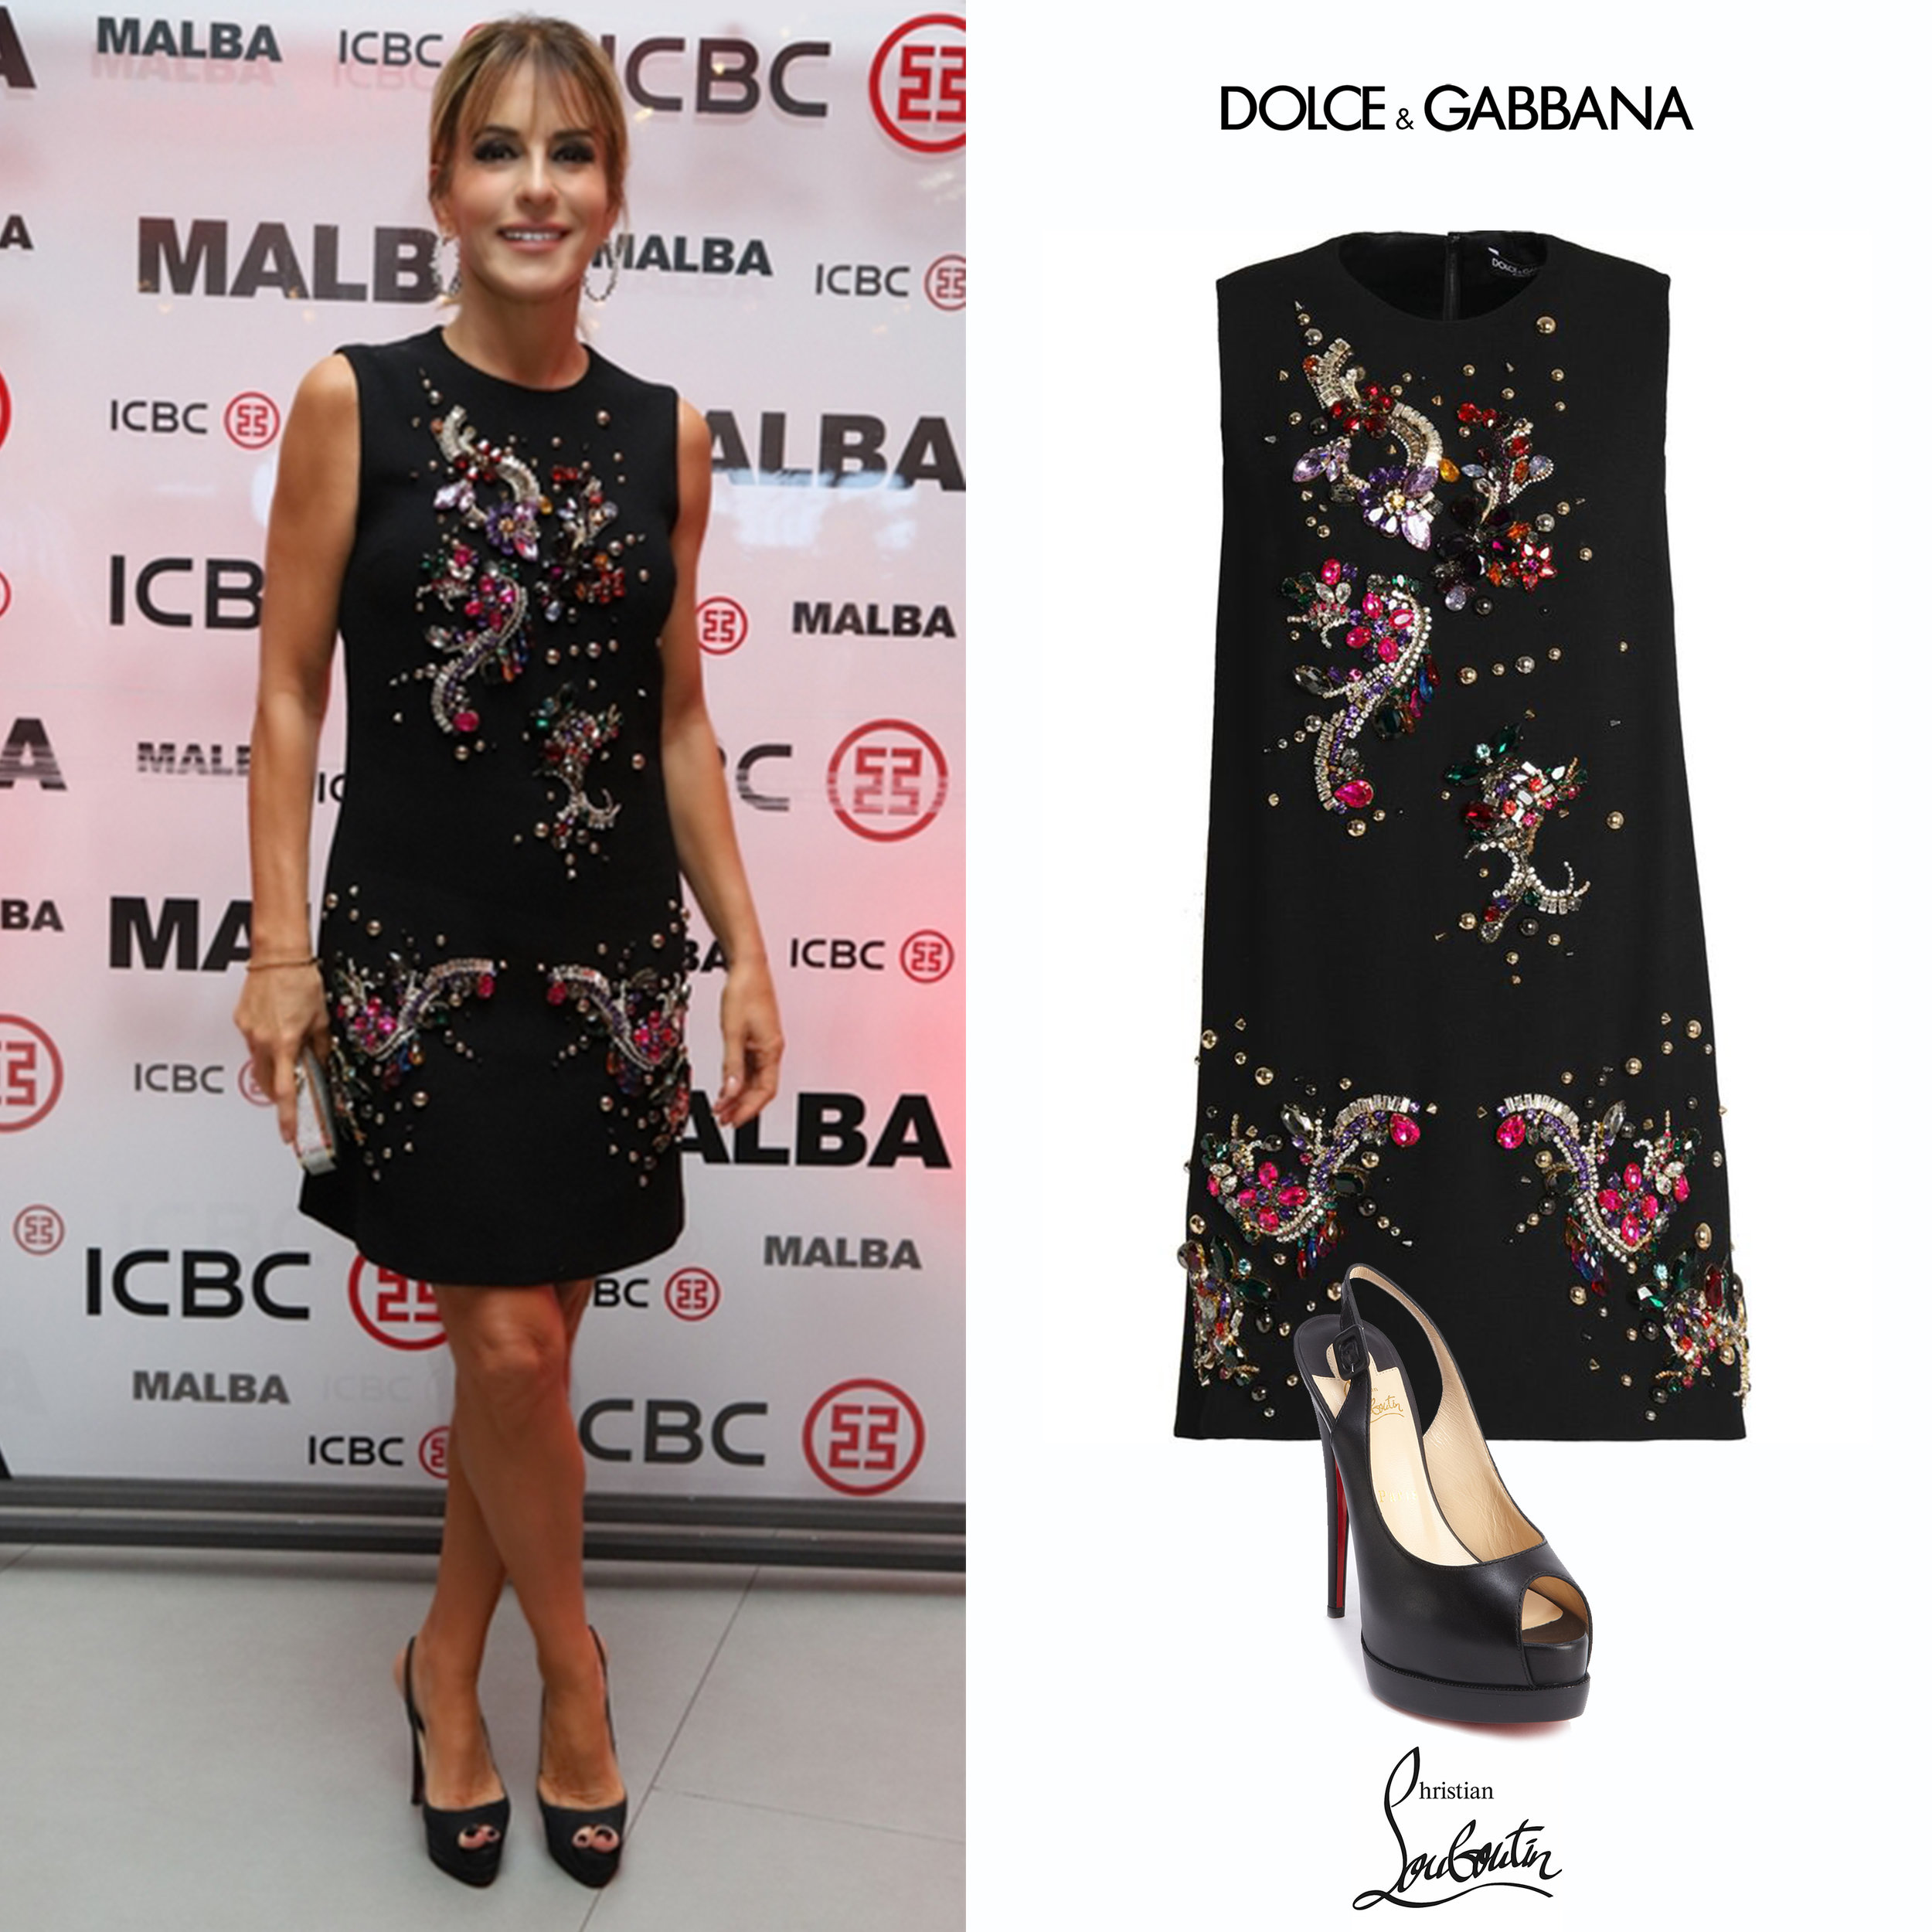 Patricia_della_Giovampaola_Darenberg_Malba_Buenos_Aires_Vestido_Dolce_Gabbana_Crepe_Crystal_Embroidered_Dress_Christian_Louboutin_Royal_Palais_Slingback_Peep_Toe_Zapatos_Black_Negros.jpg